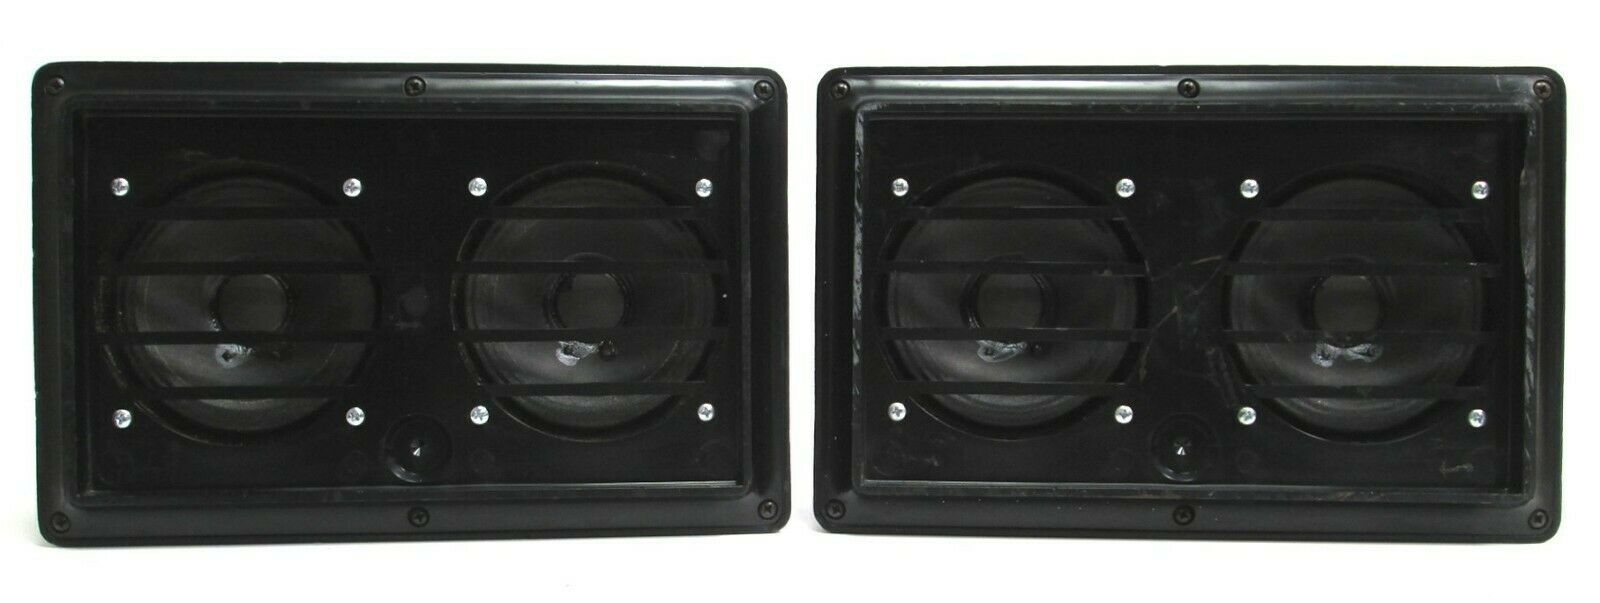 PAIR of Galaxy Audio HOT SPOT Personal Vocal Monitor Speakers - schwarz  4907